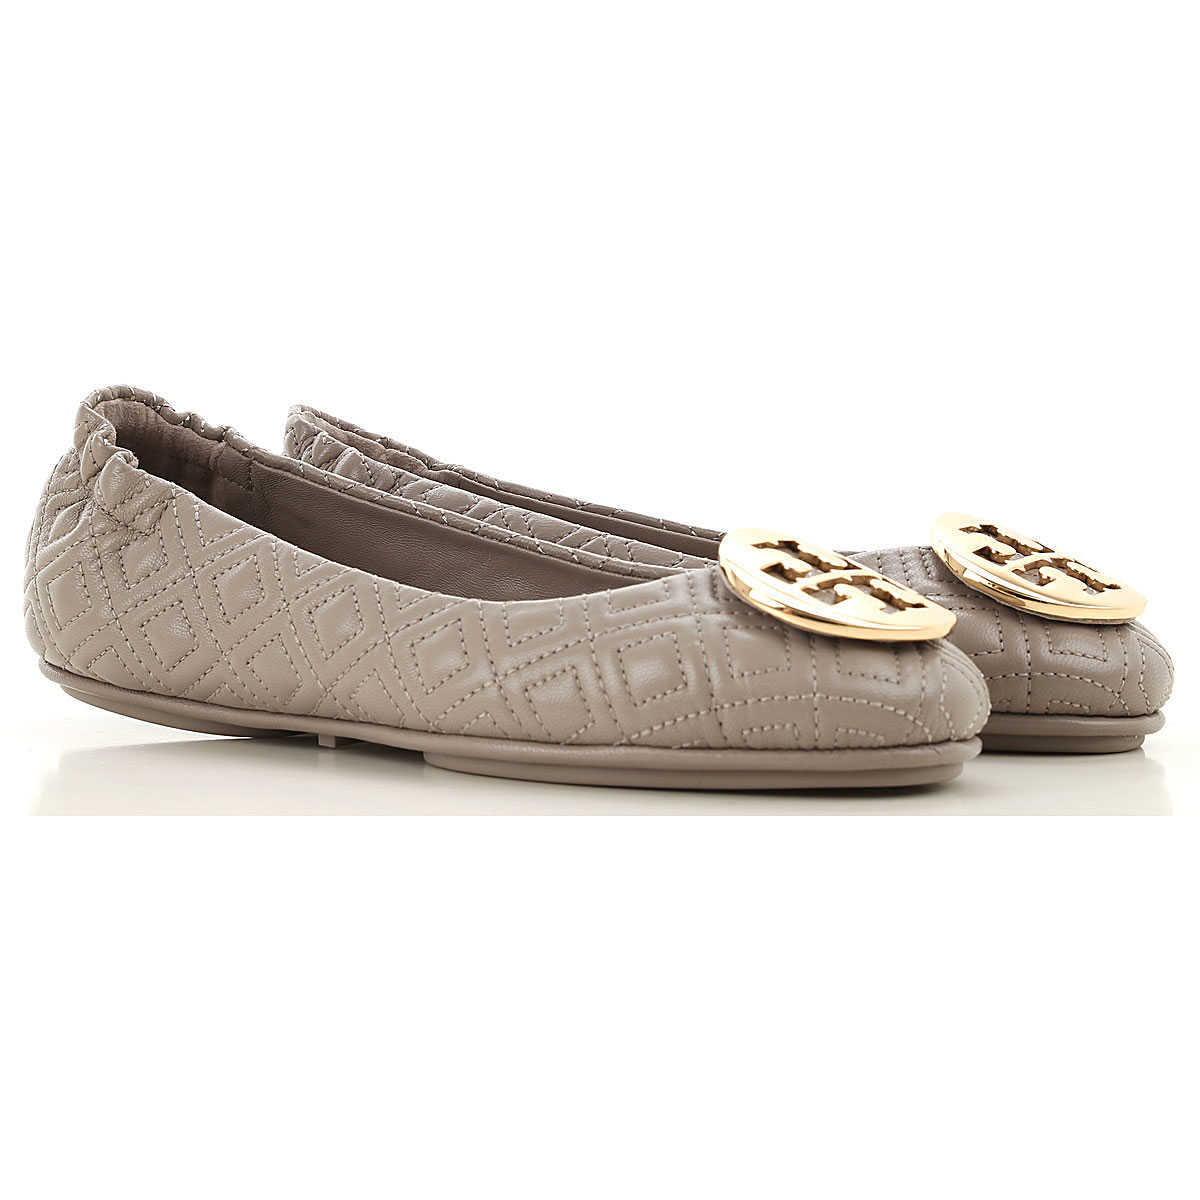 Tory Burch Ballet Flats Ballerina Shoes for Women Dust Storm UK - GOOFASH